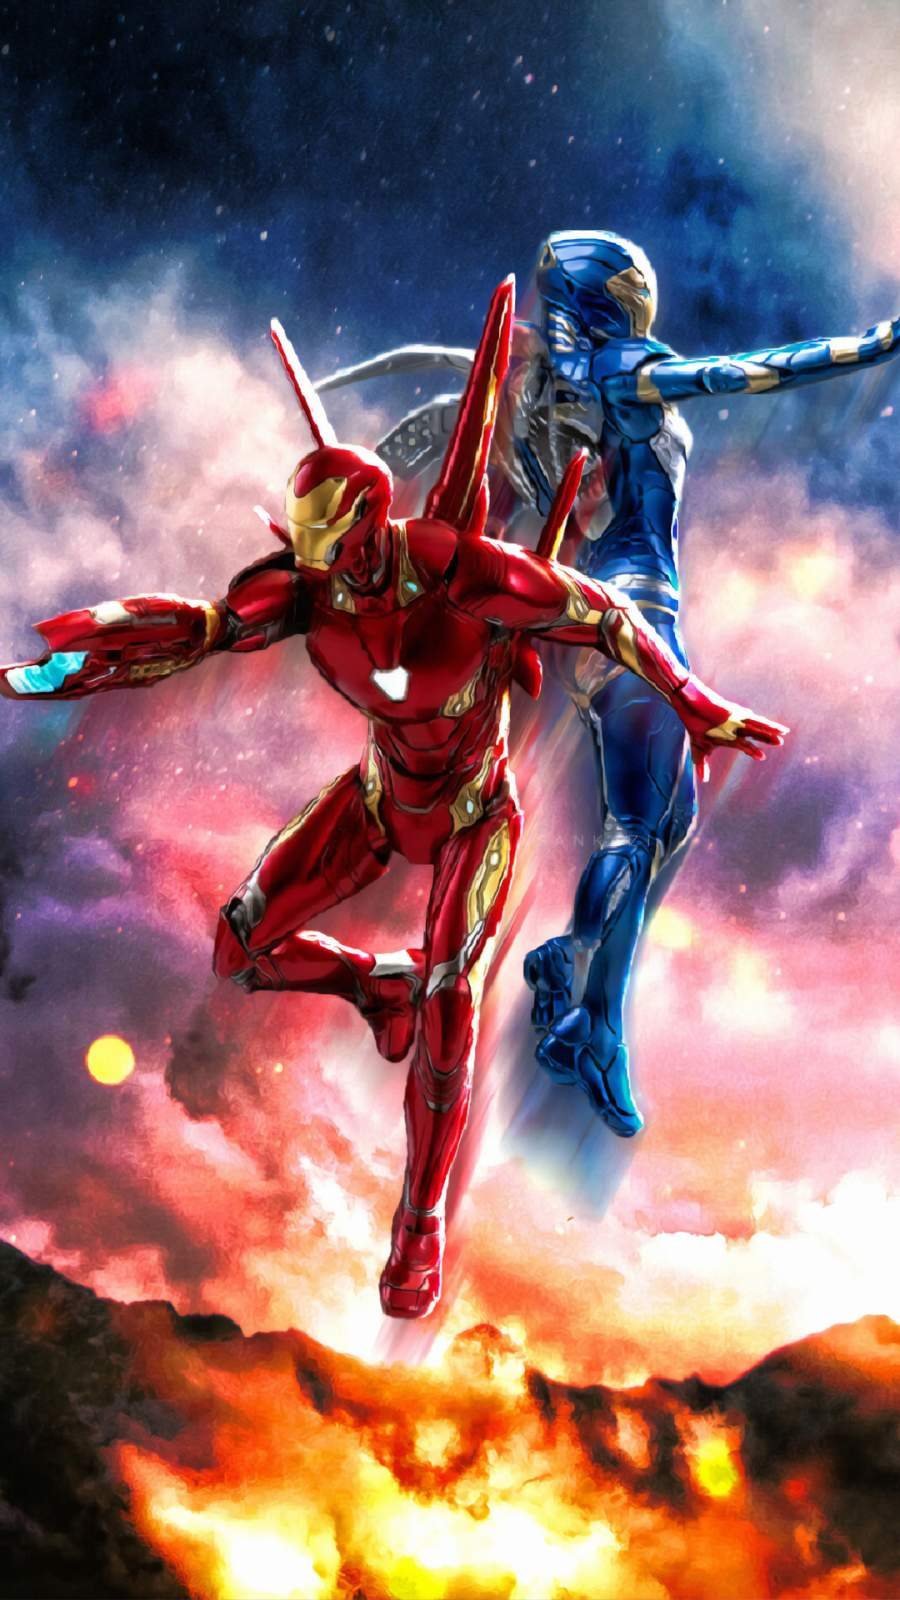 Iron Man and Pepper Potts Rescue Suit iPhone Wallpaper